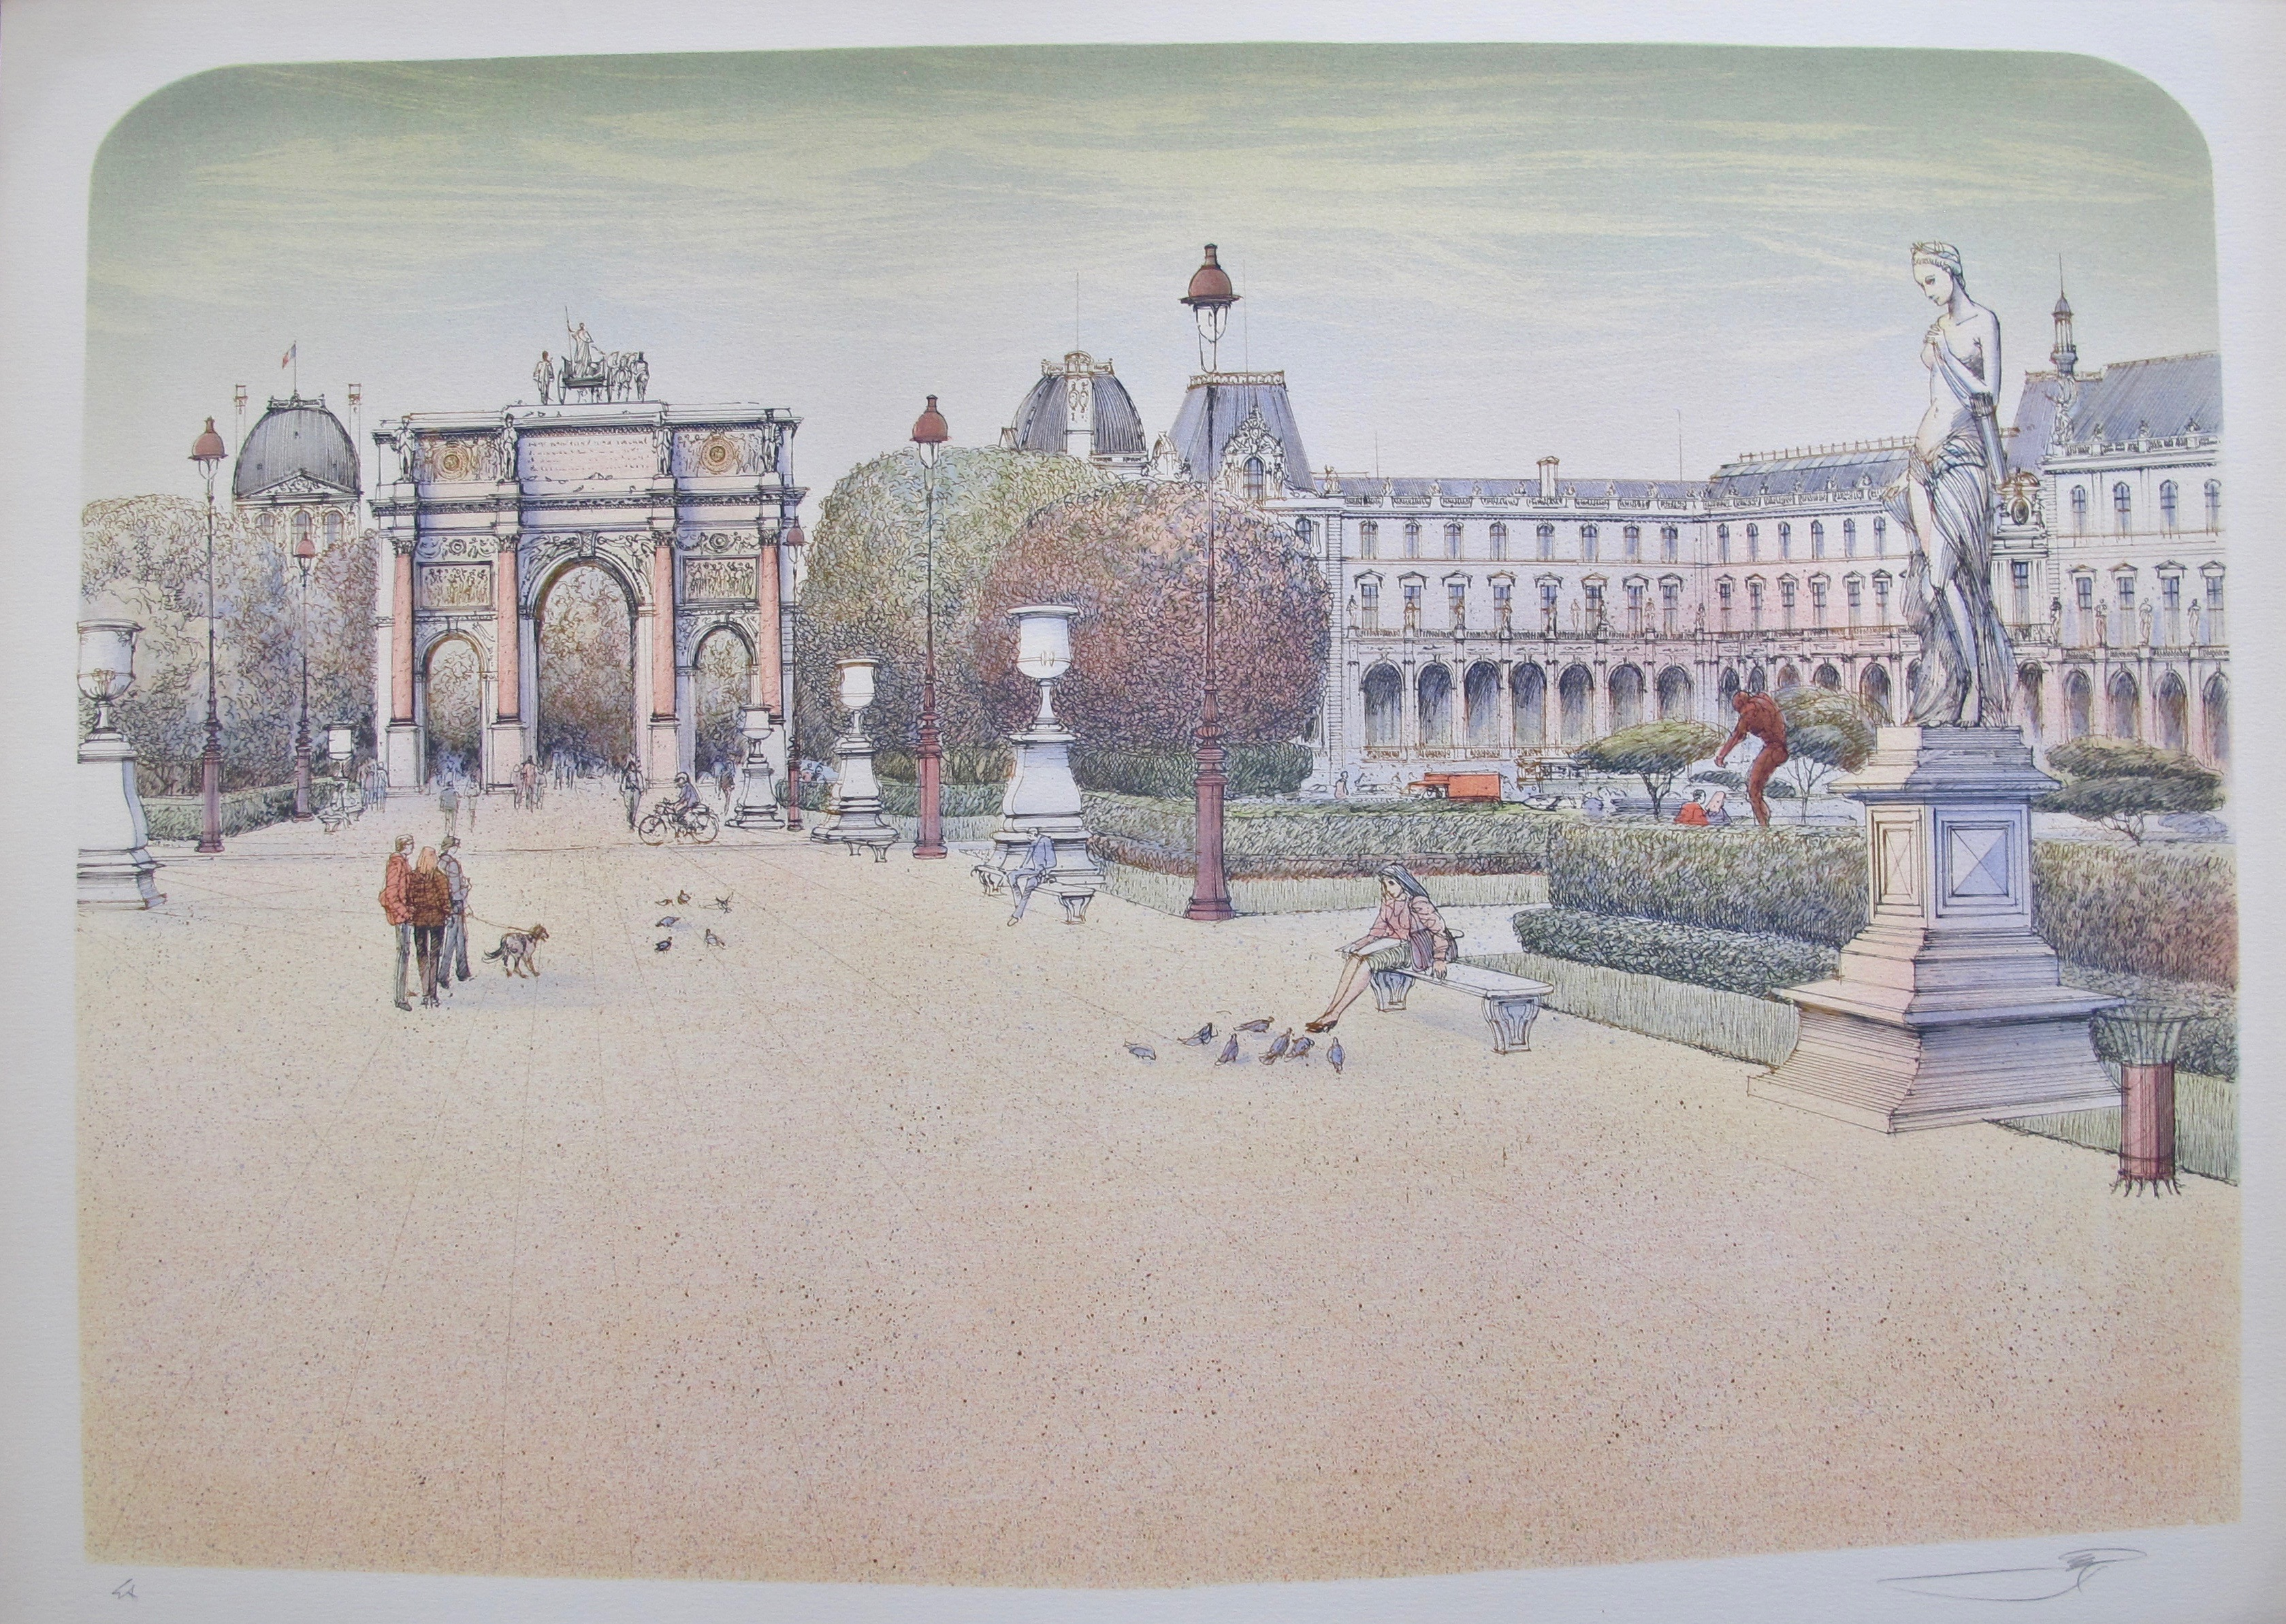 ROLF RAFFLEWSKI PARIS PLACE DU CARROUSEL Hand Signed Limited Edition Lithograph